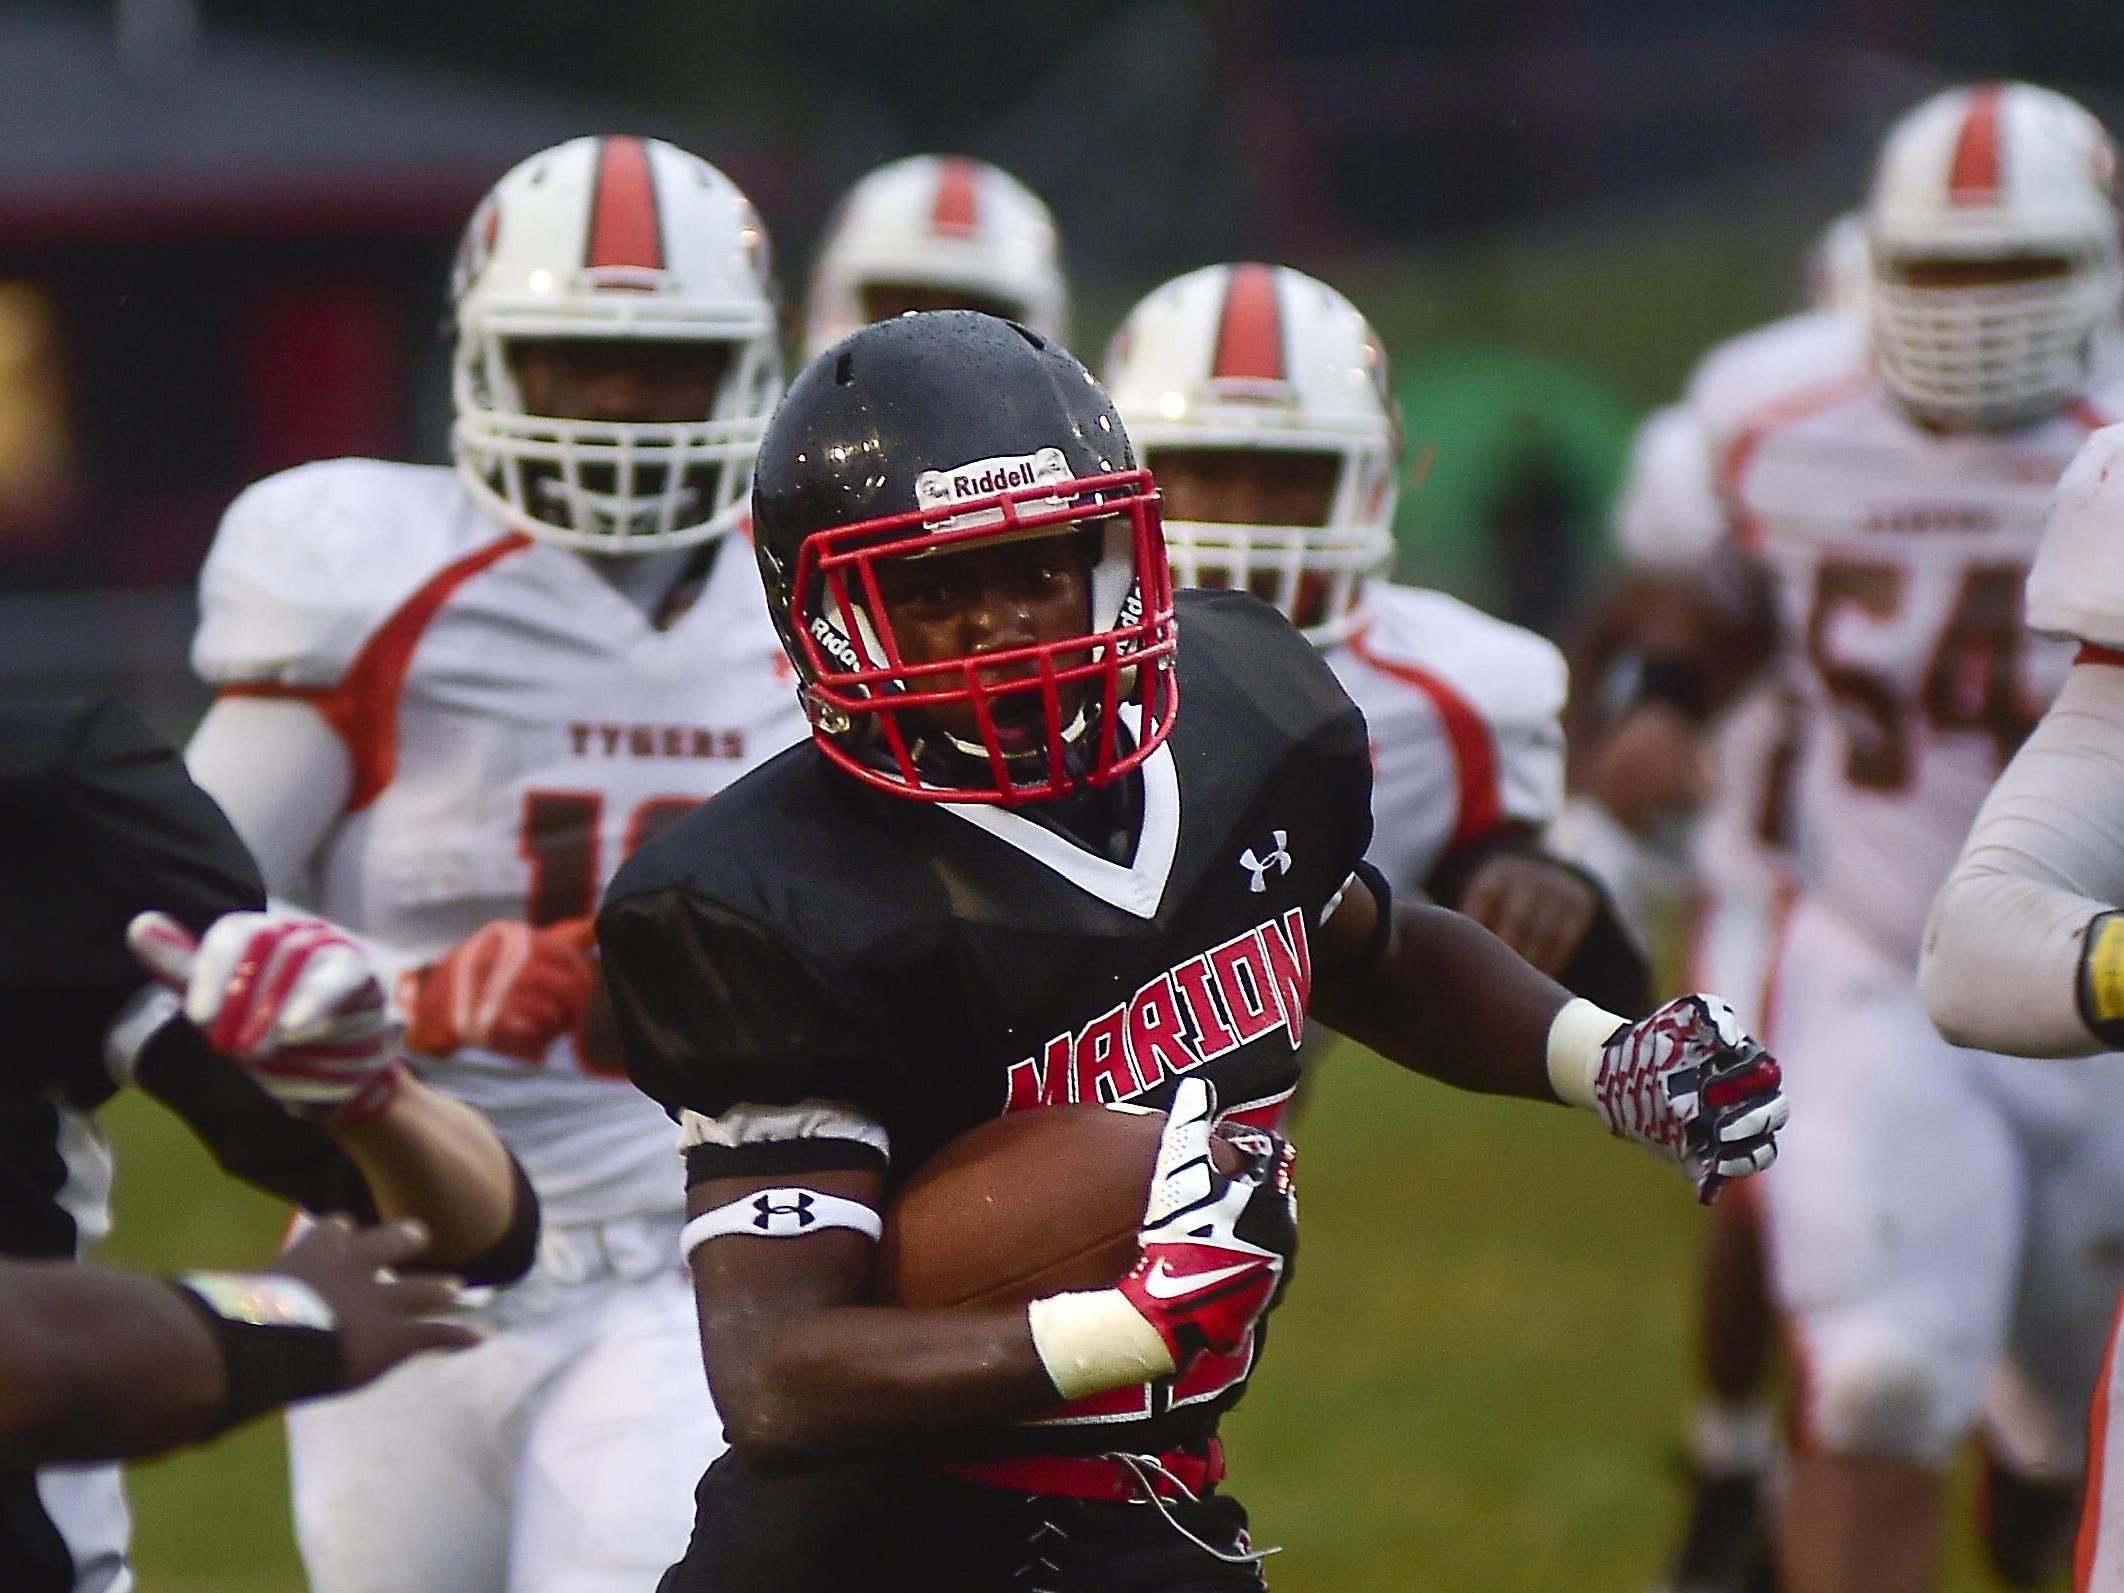 Marion Harding's Titus Douglas gains yards as he eludes Mansfield Senior players during the Harding vs Mansfield Senior football game on Friday.